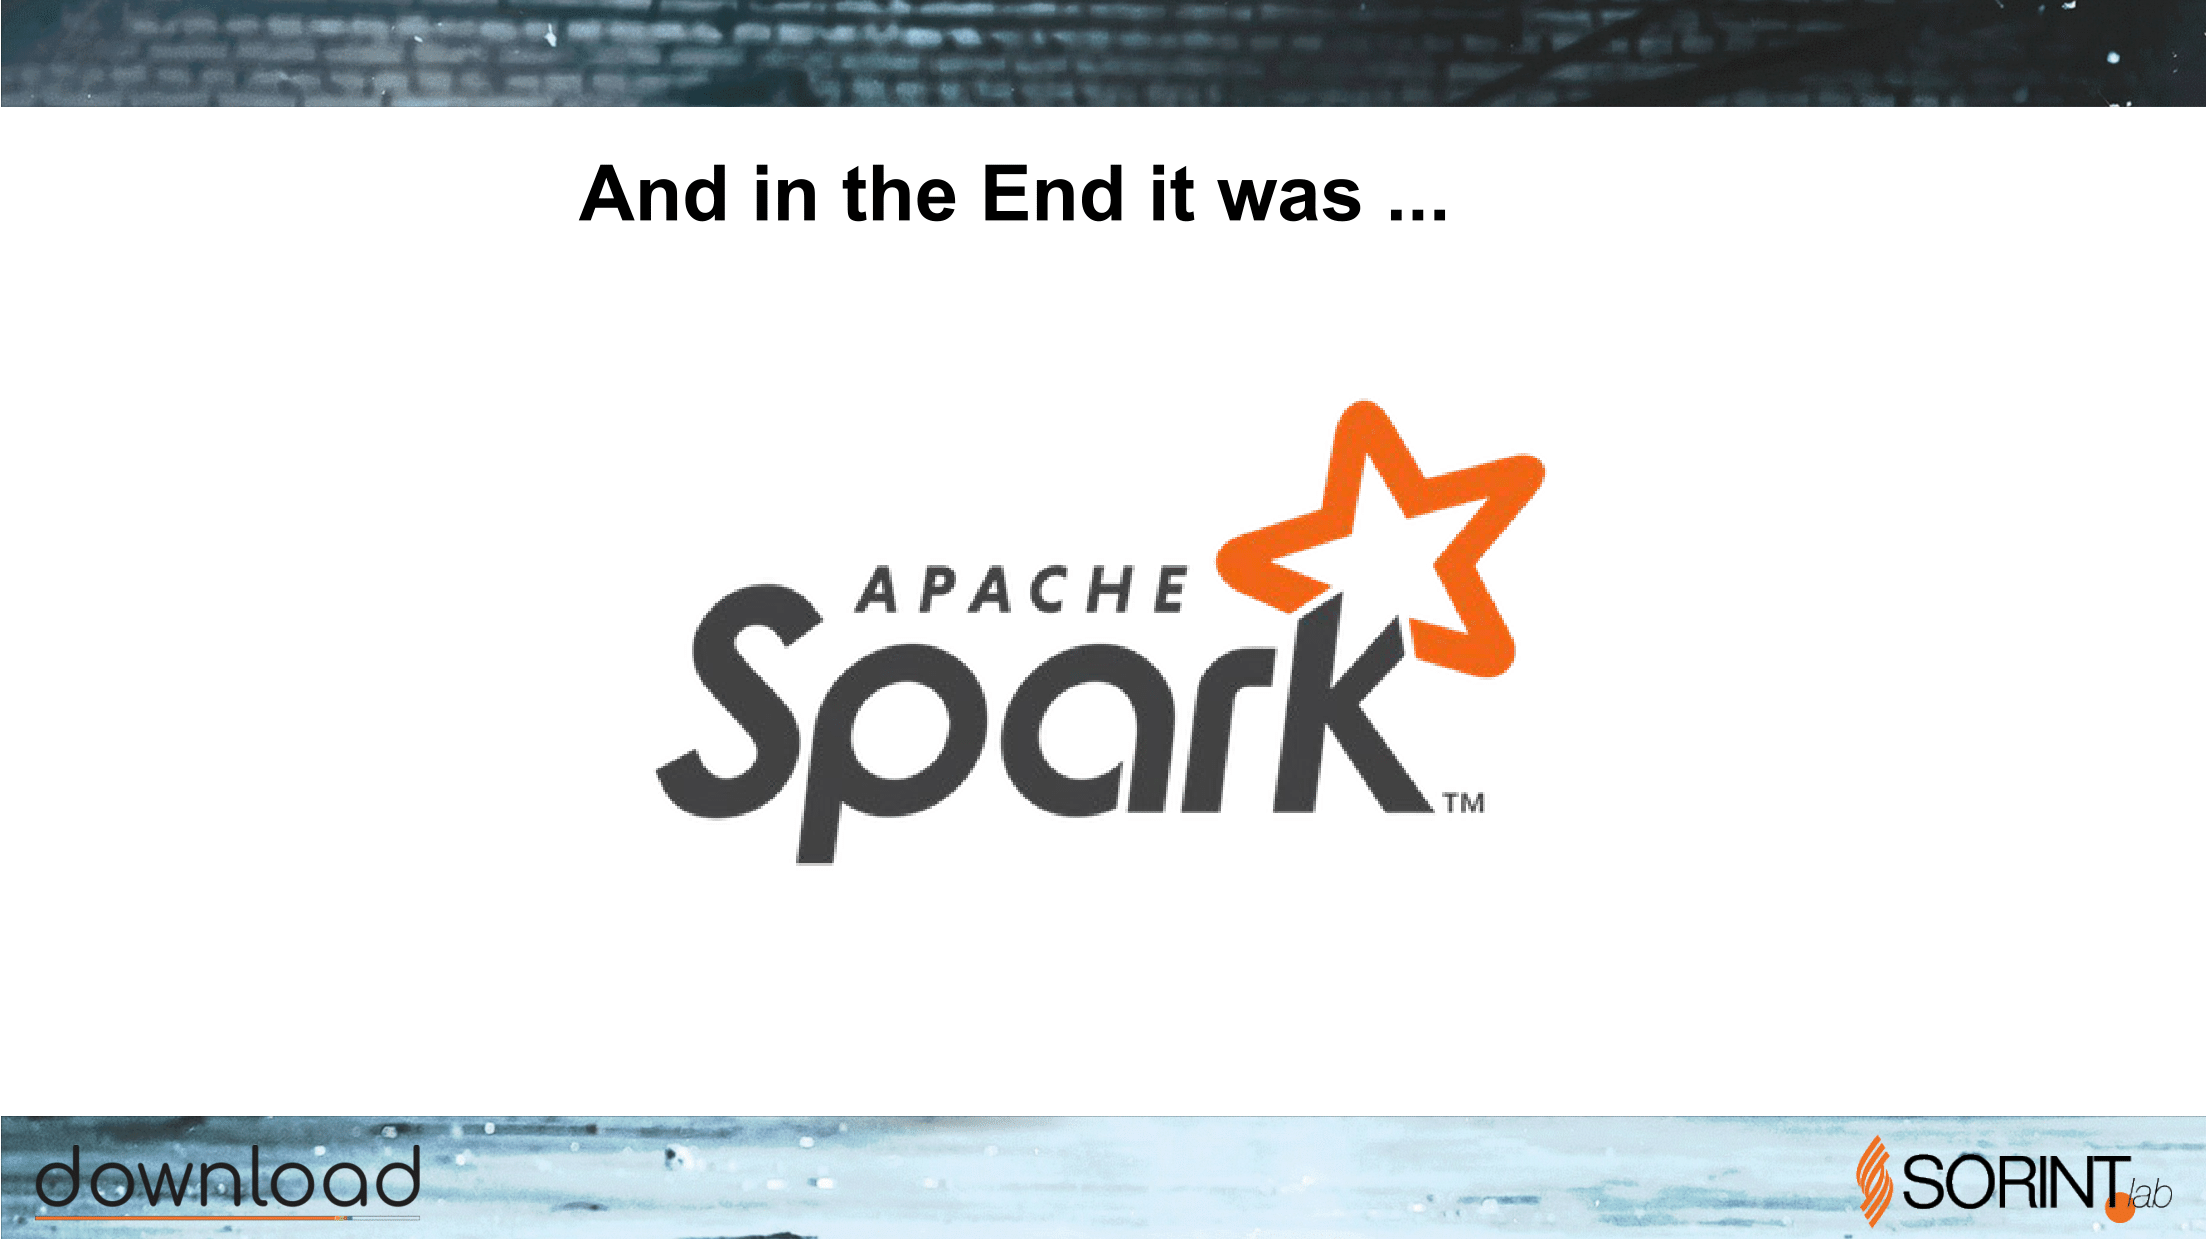 Apache_Spark_What_Why_When-16.png